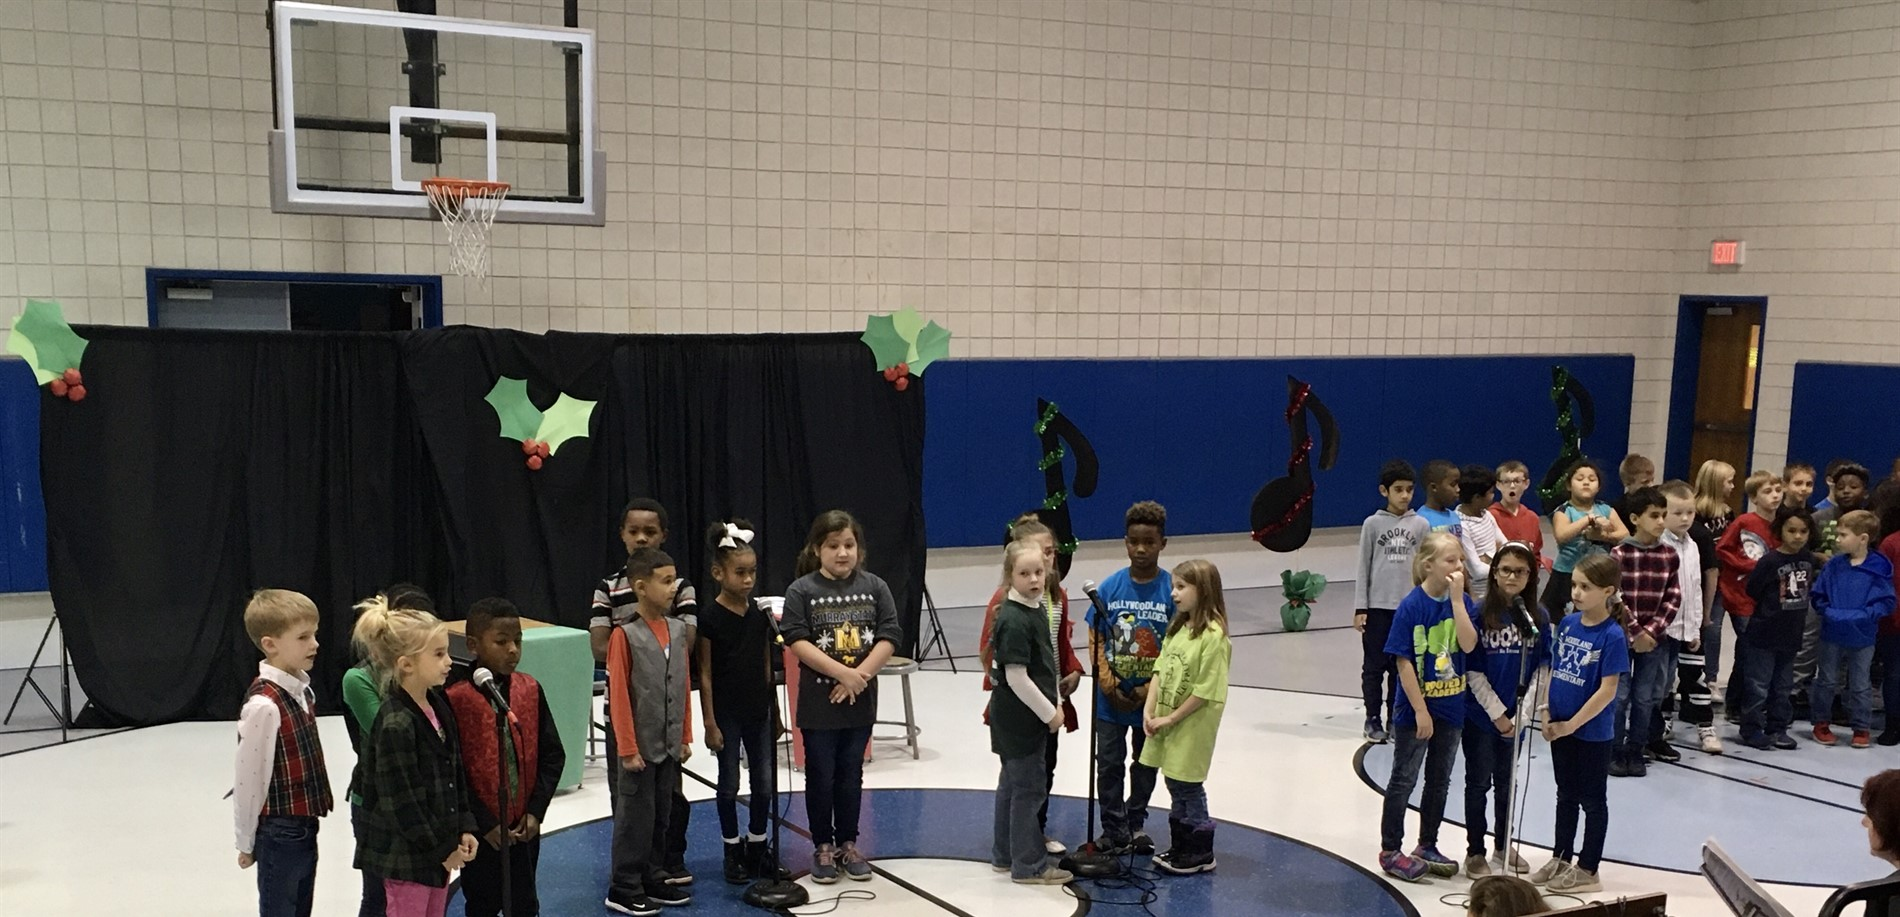 2nd and 3rd grade students sing in the holiday performance